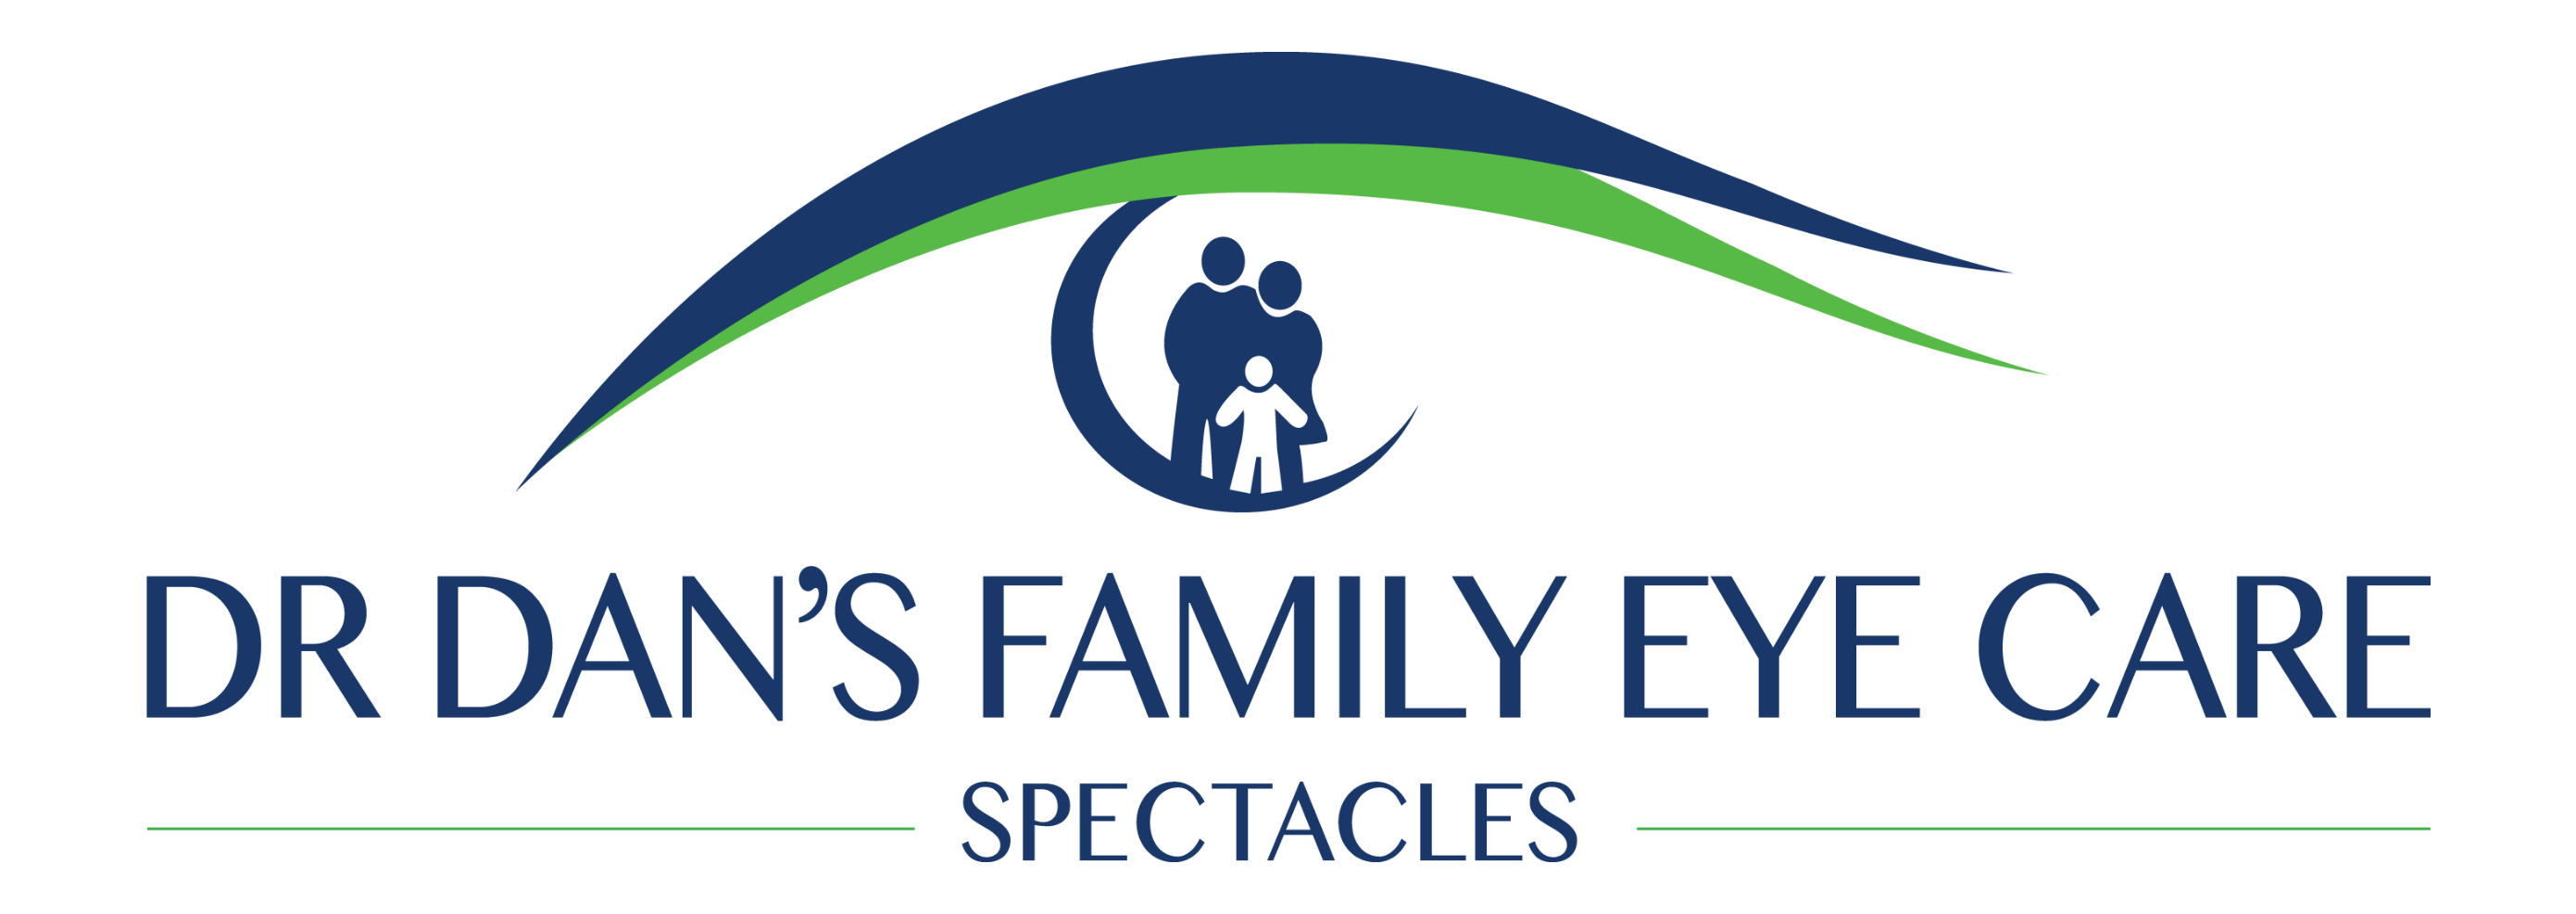 Dr. Dan's Family Eye Care